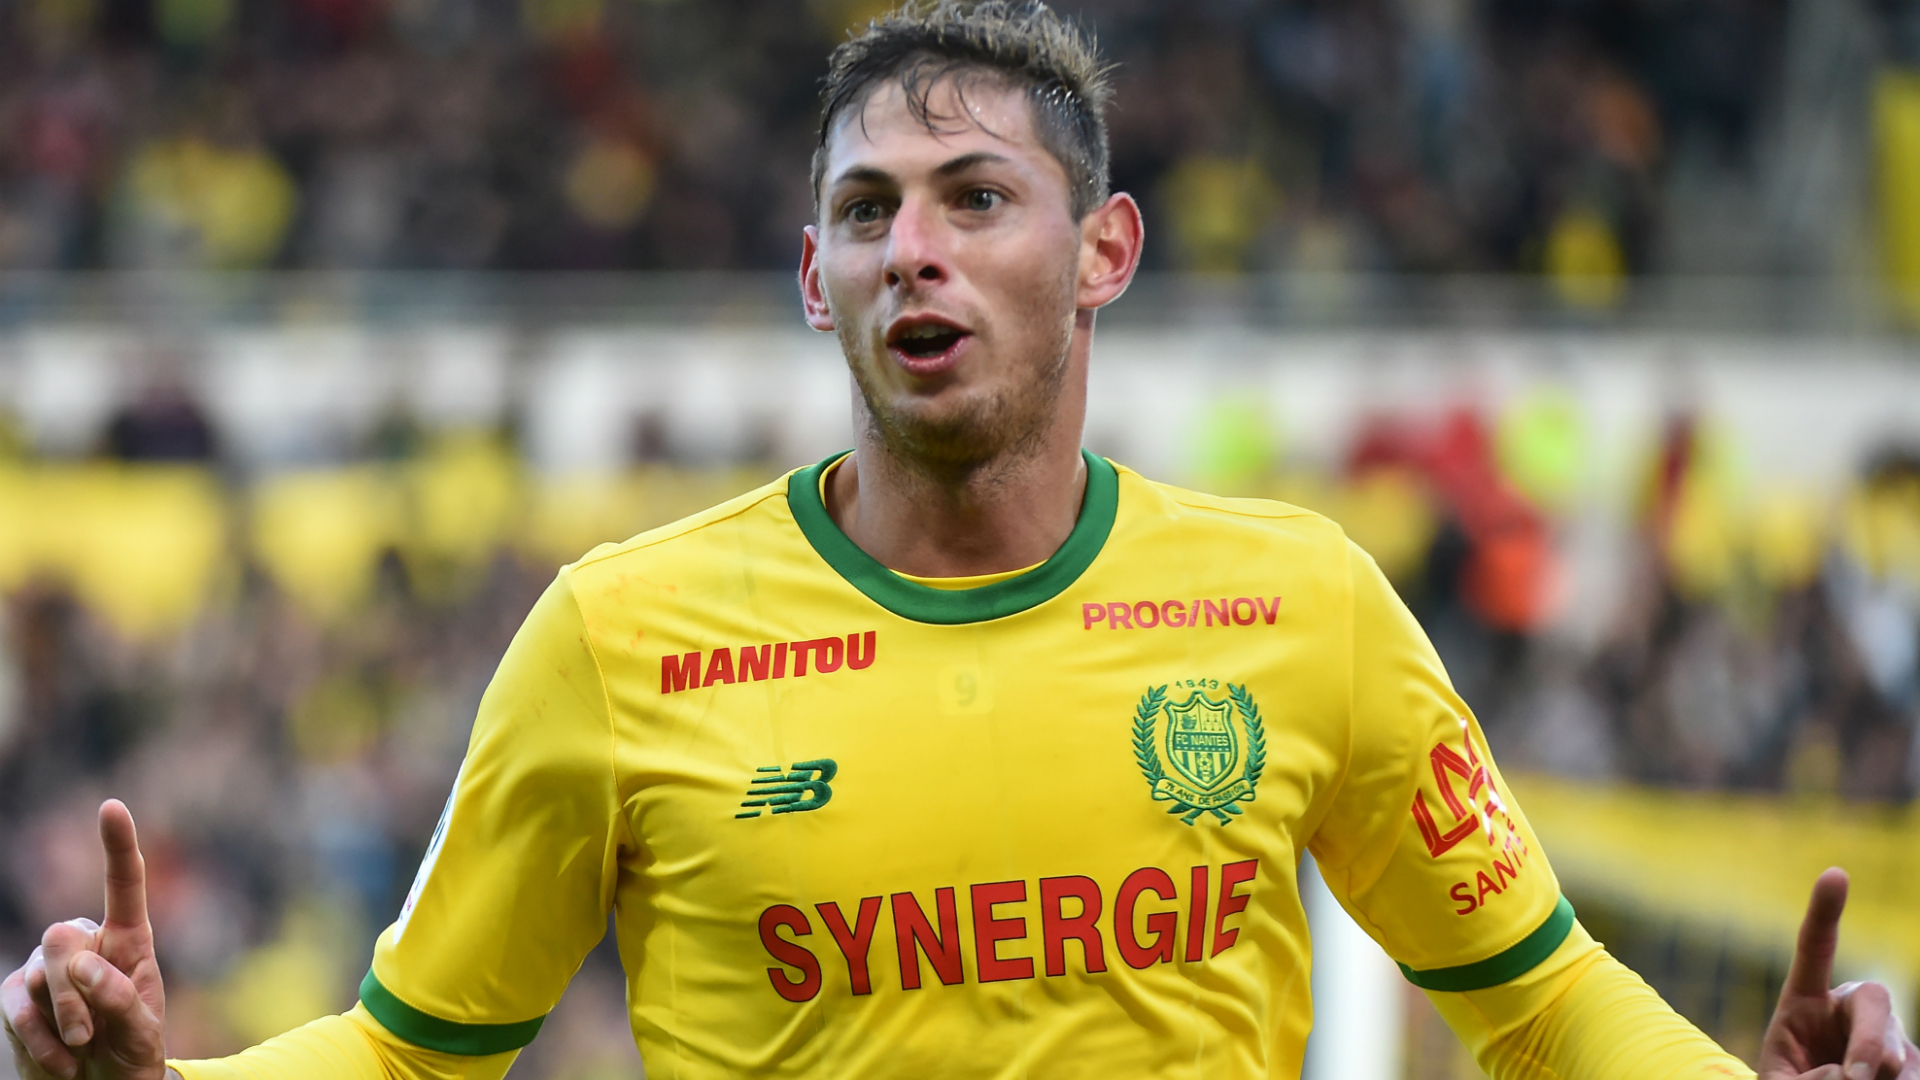 Cardiff City 'concerned' by report showing Sala was exposed to carbon monoxide